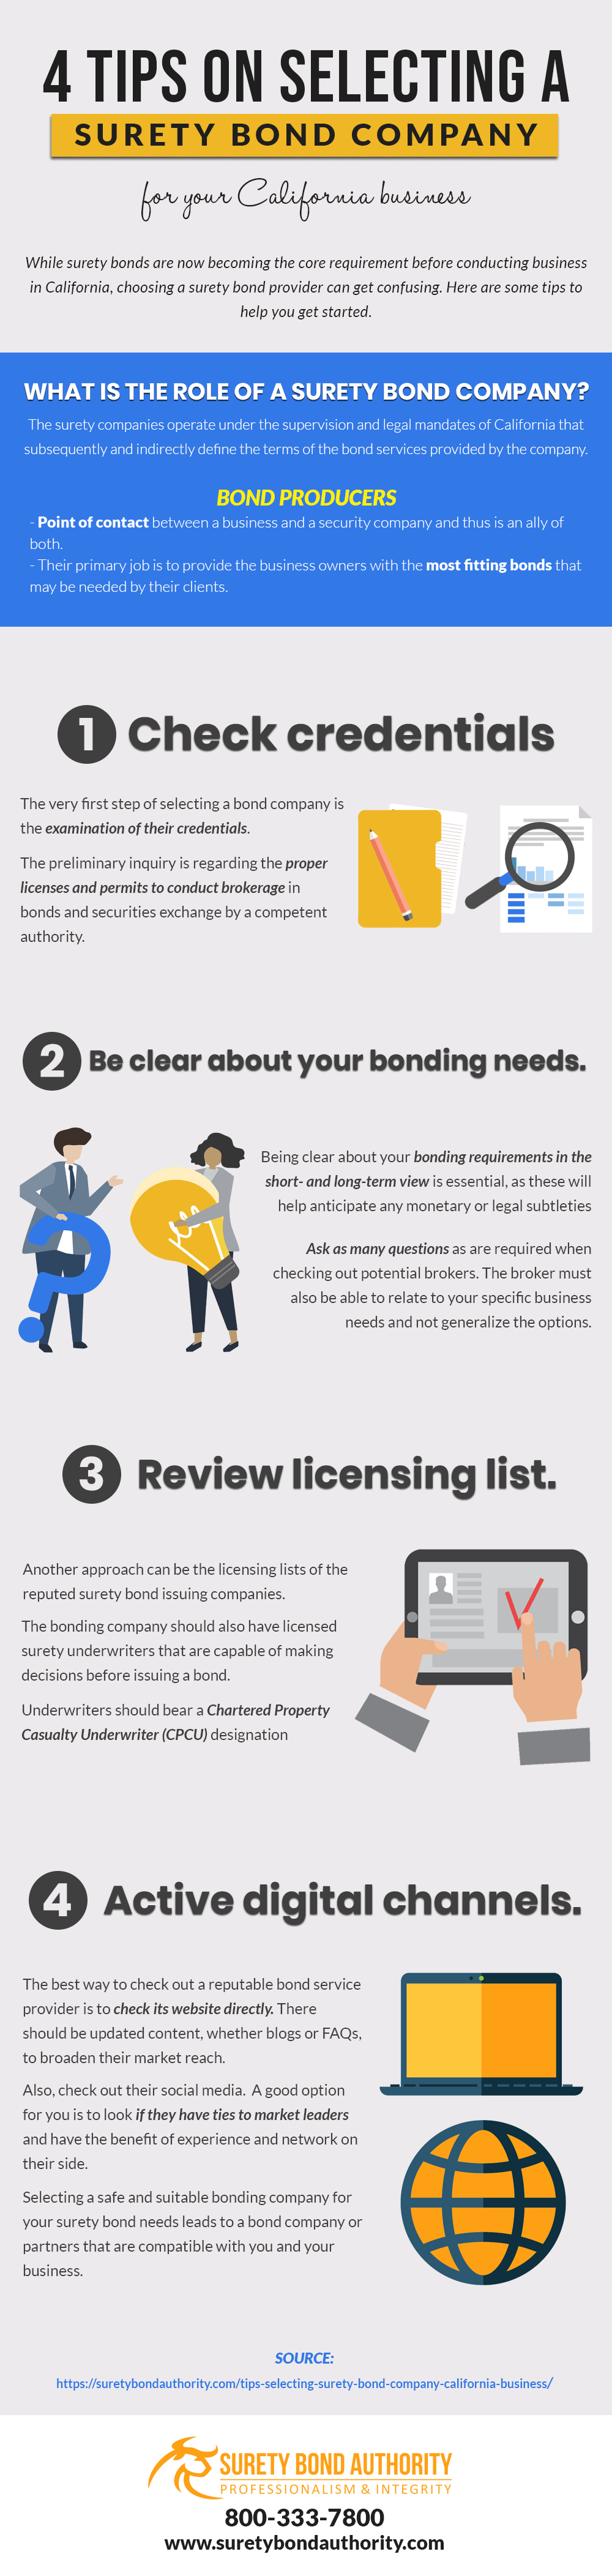 Four Tips on Selecting a Surety Bond Company Infographic